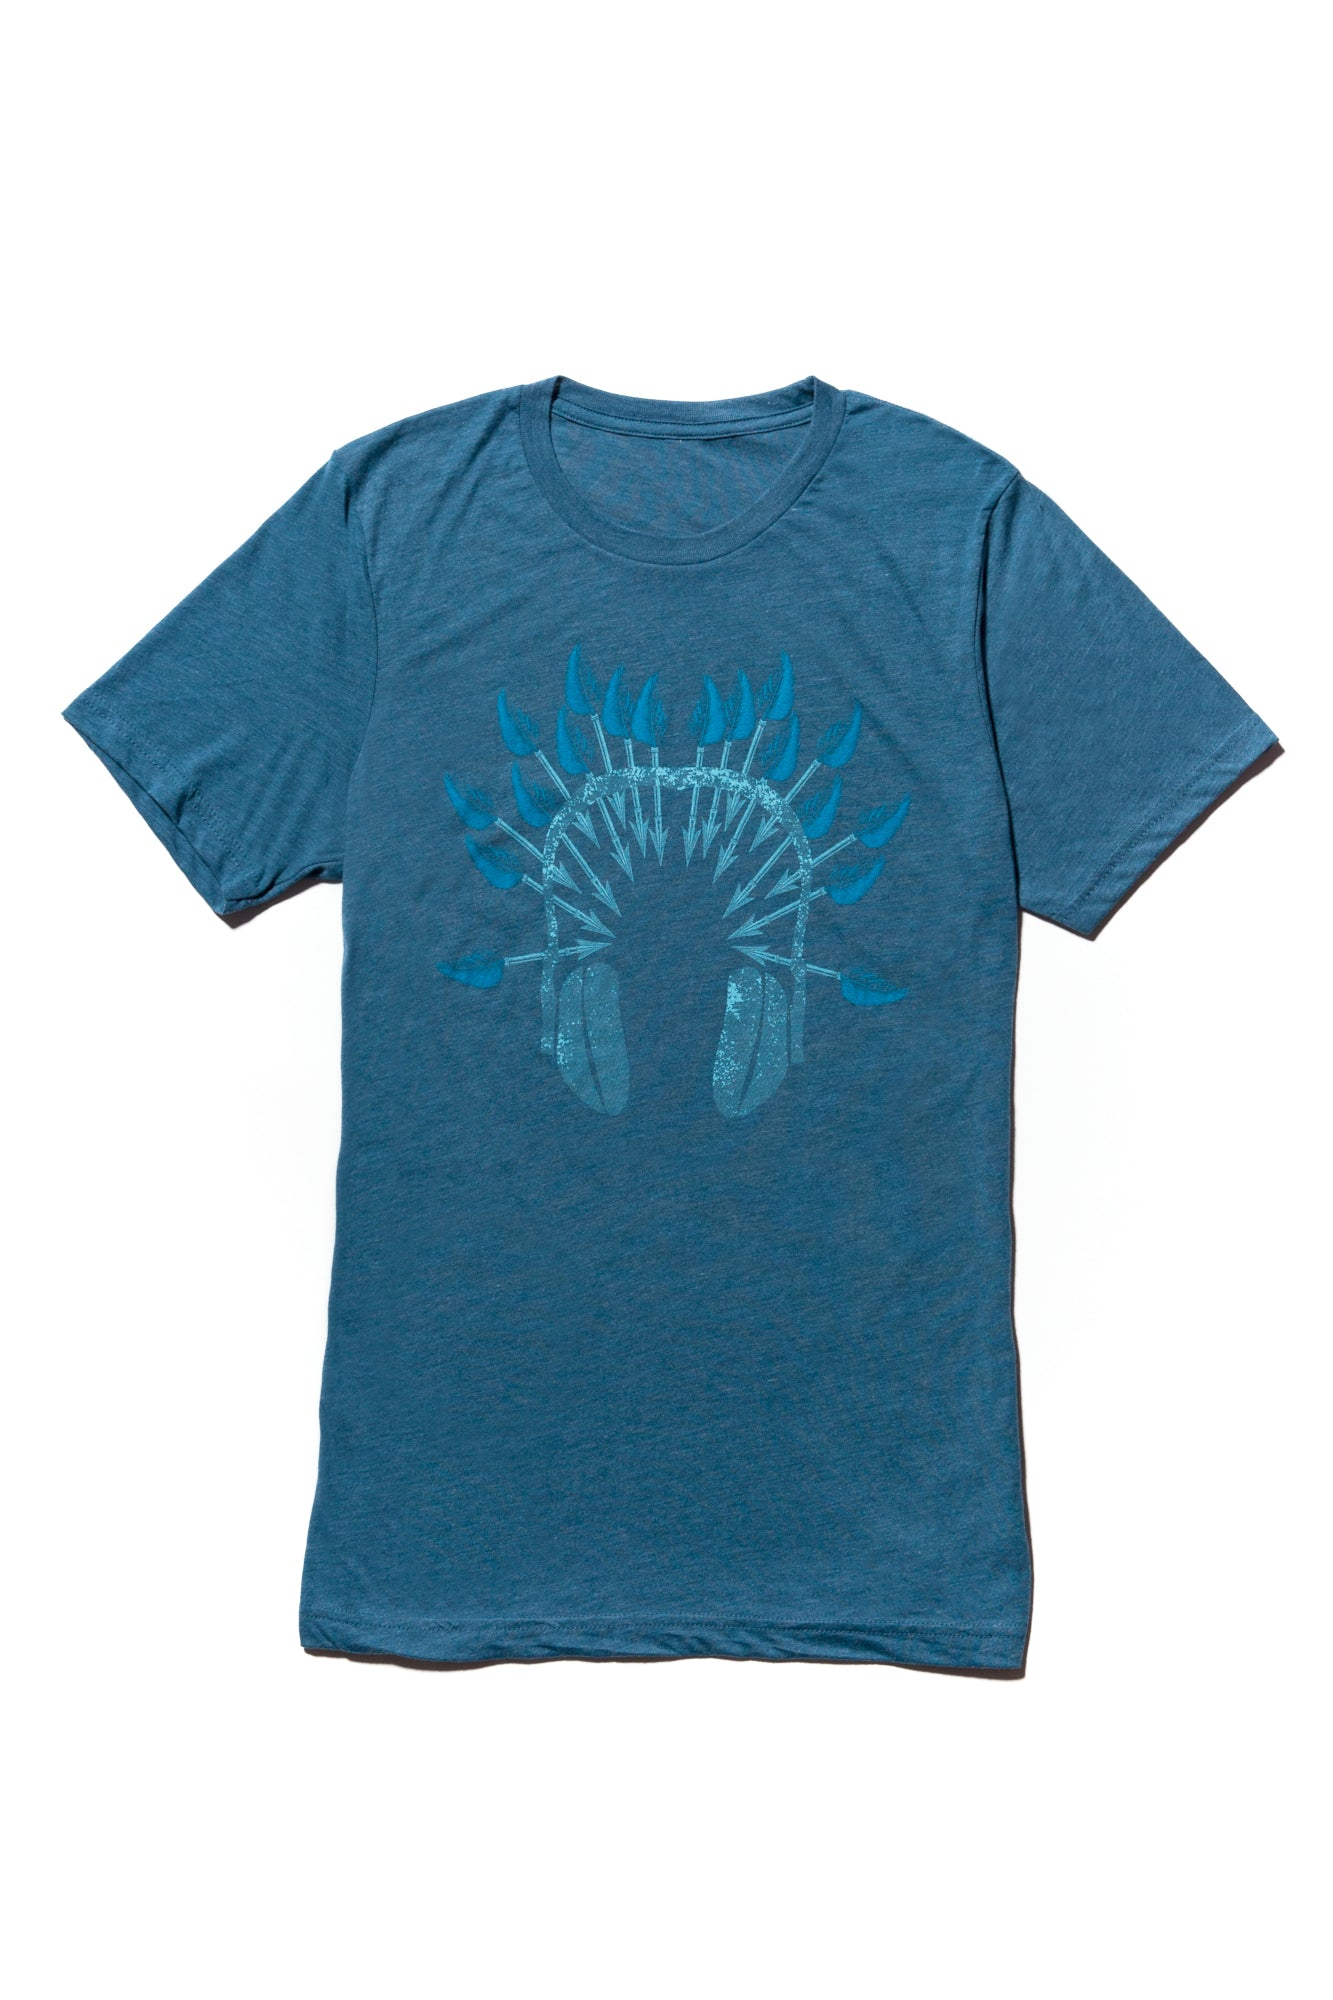 soundoff.mens.steel.blue.t.shirt.graphic.tee.warrior.headphones..cotton.polyester.rayon.blend.